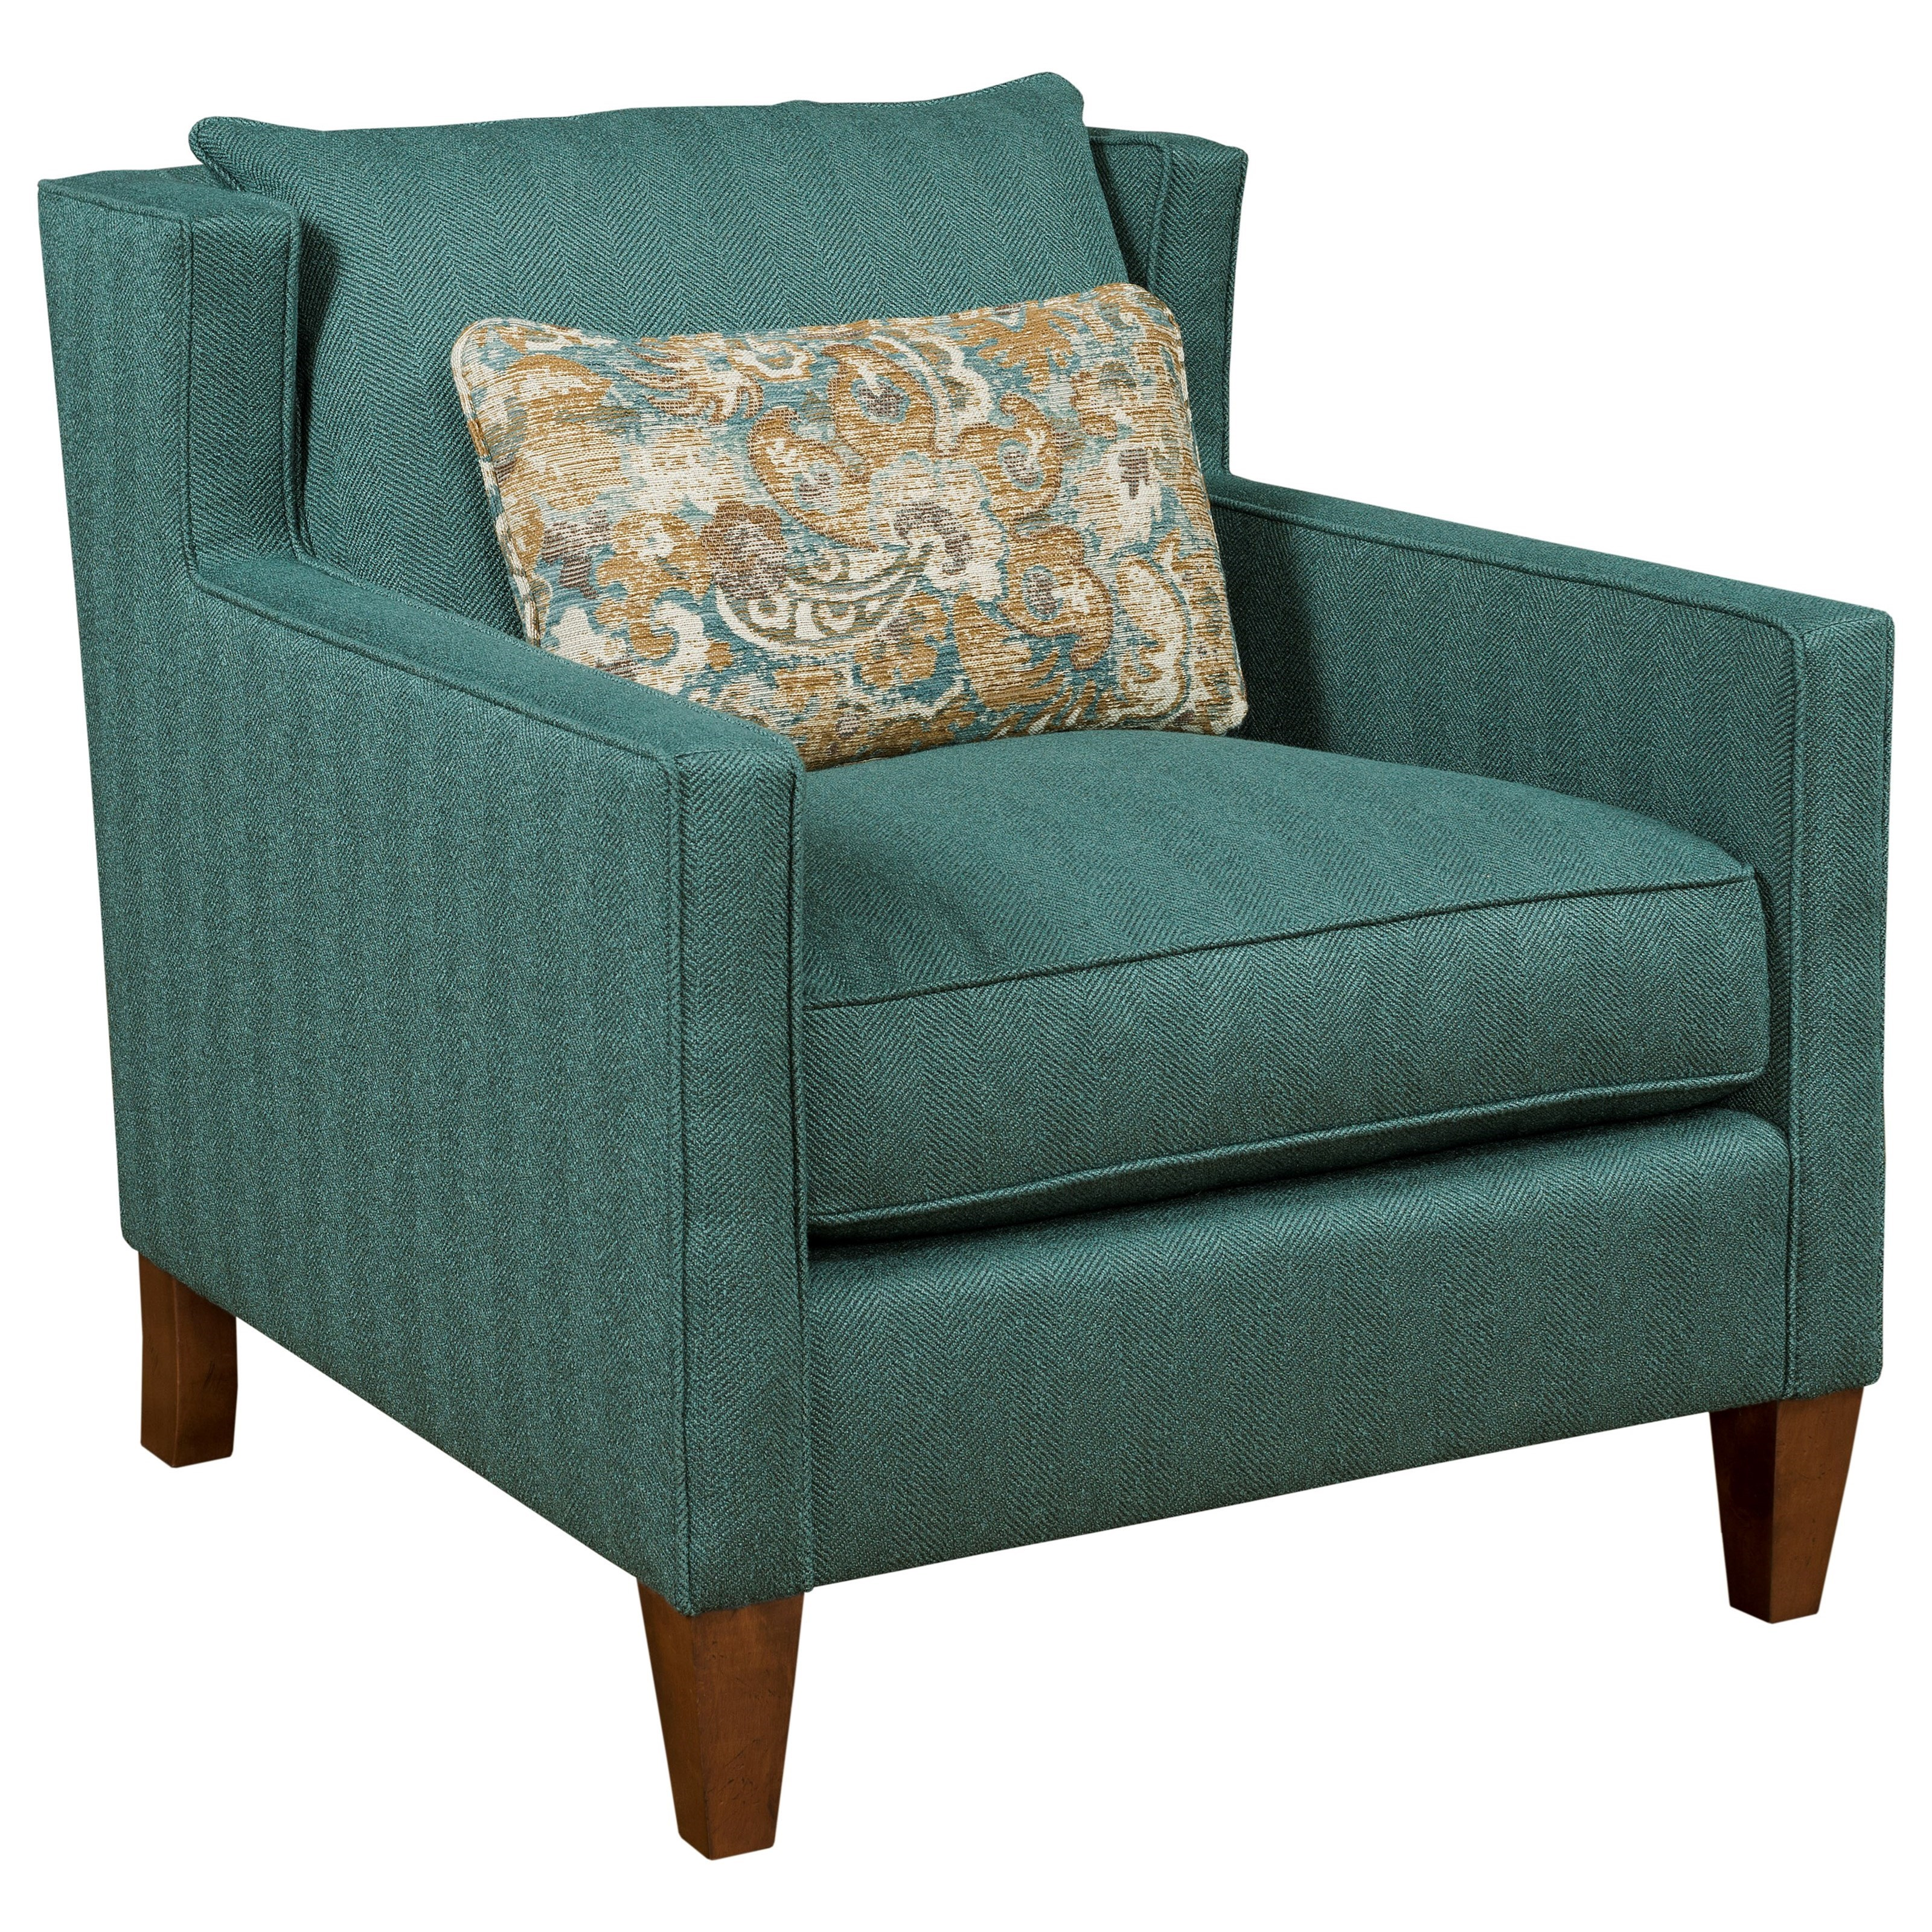 Alta Upholstered Chair by Kincaid Furniture at Esprit Decor Home Furnishings